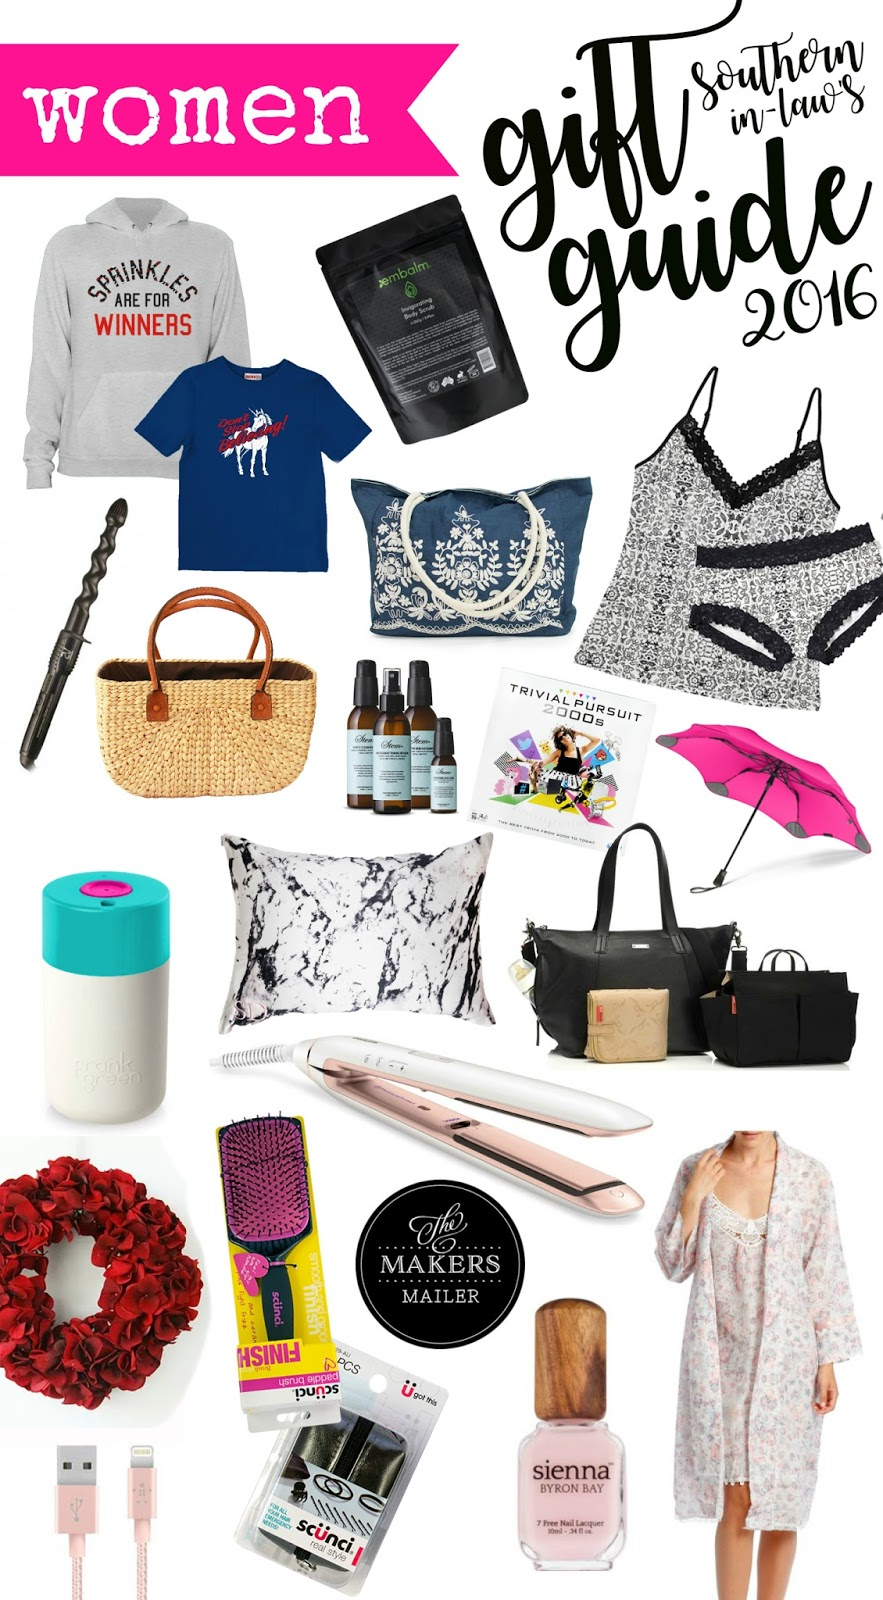 The Best Gift Ideas For Women 2016 S Christmas Guide